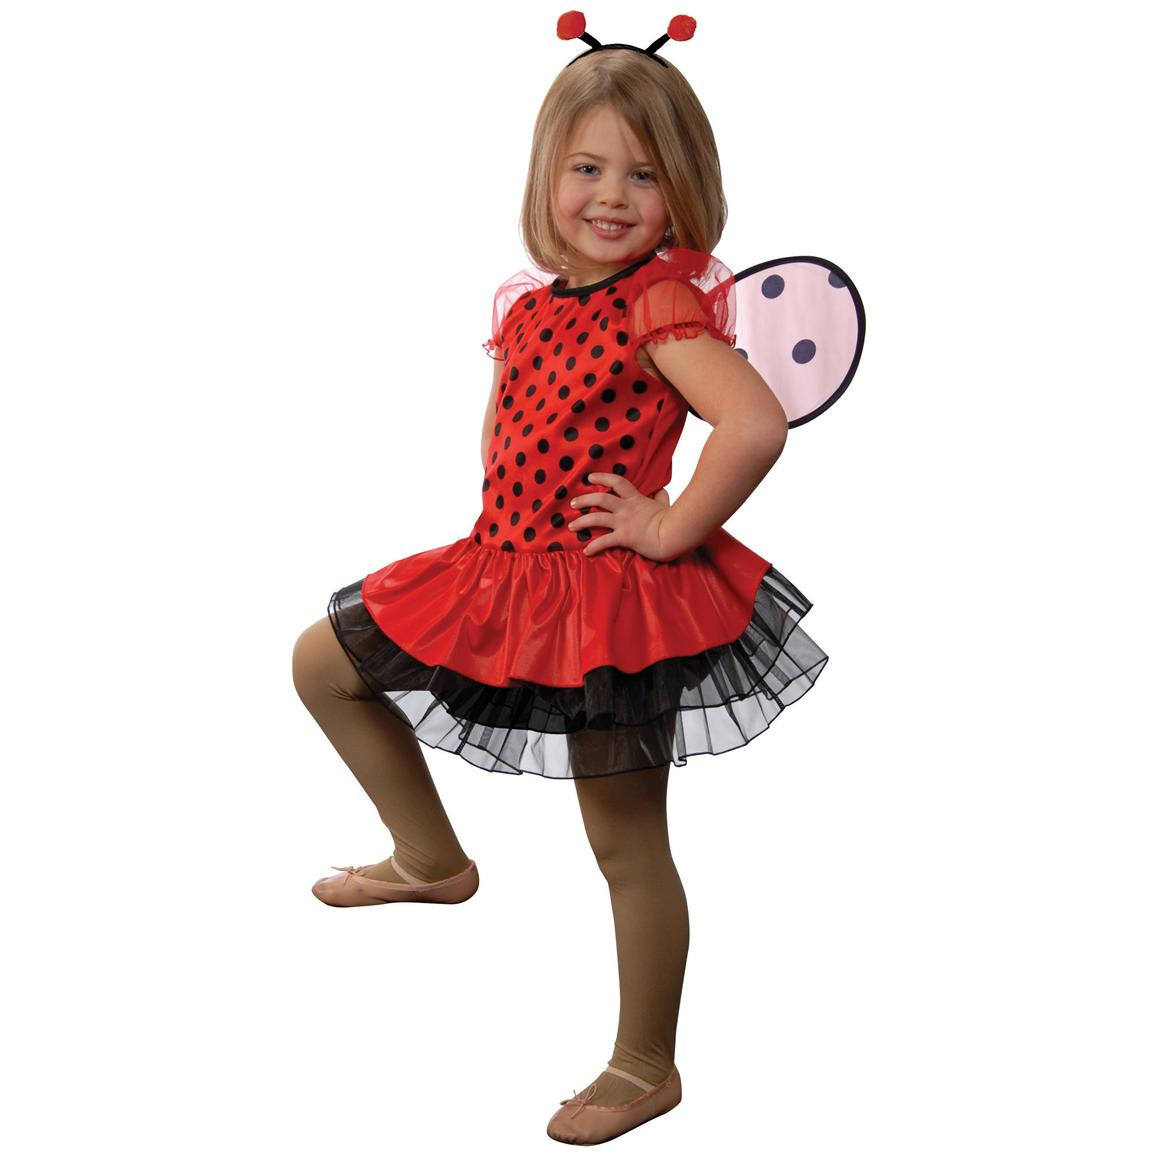 Child's Jr. Ladybug Costume